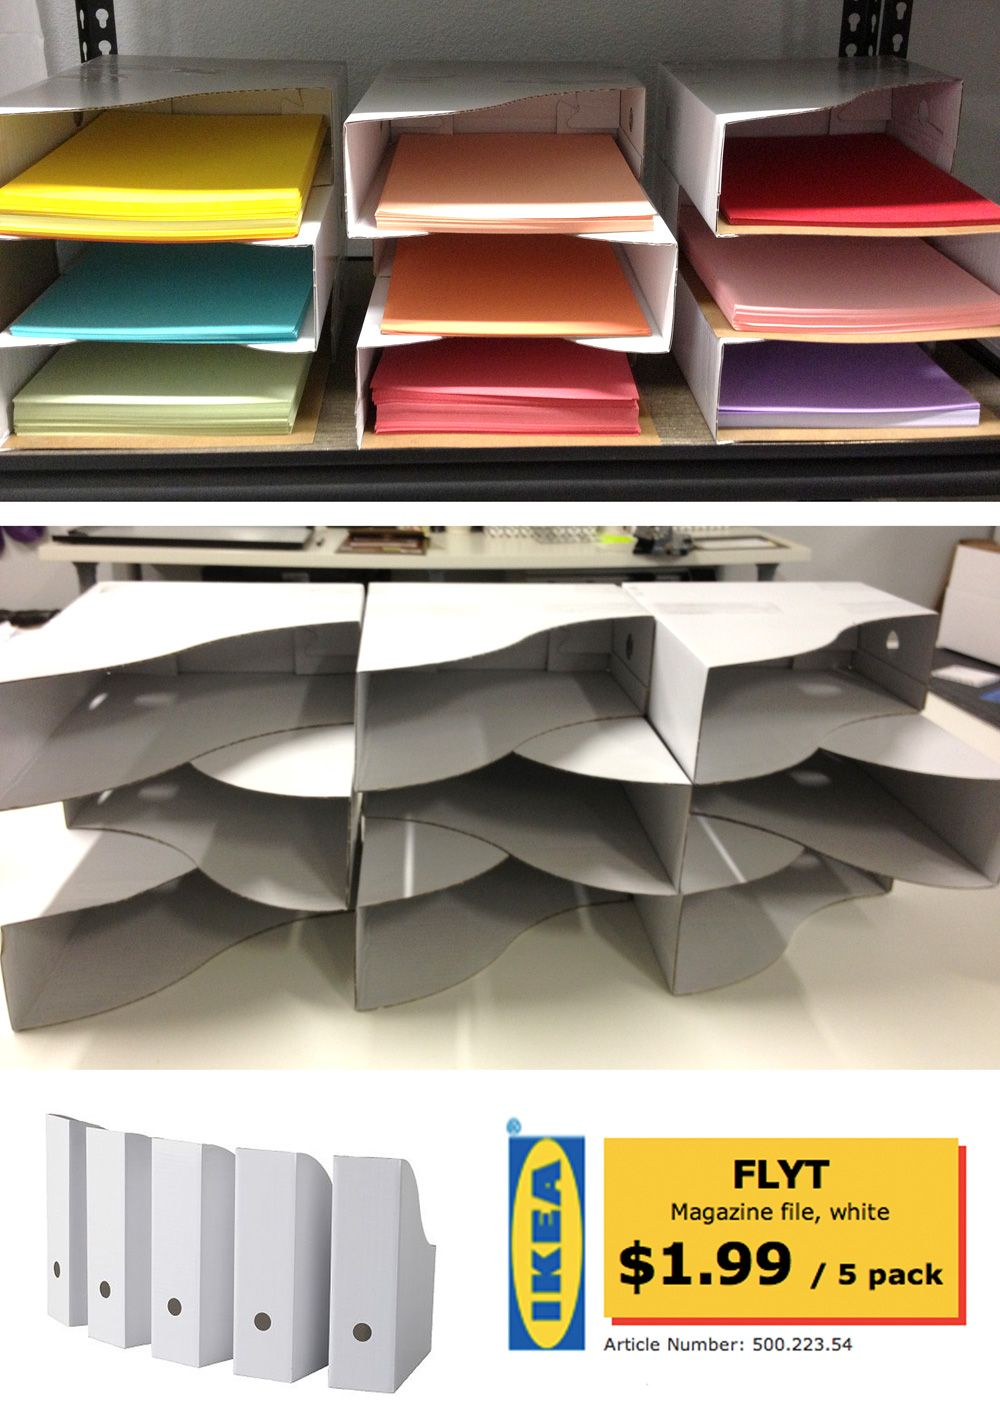 10 DIY Projects for Your Office. 10 DIY Projects for Your Office   Paper sorter  Magazine files and